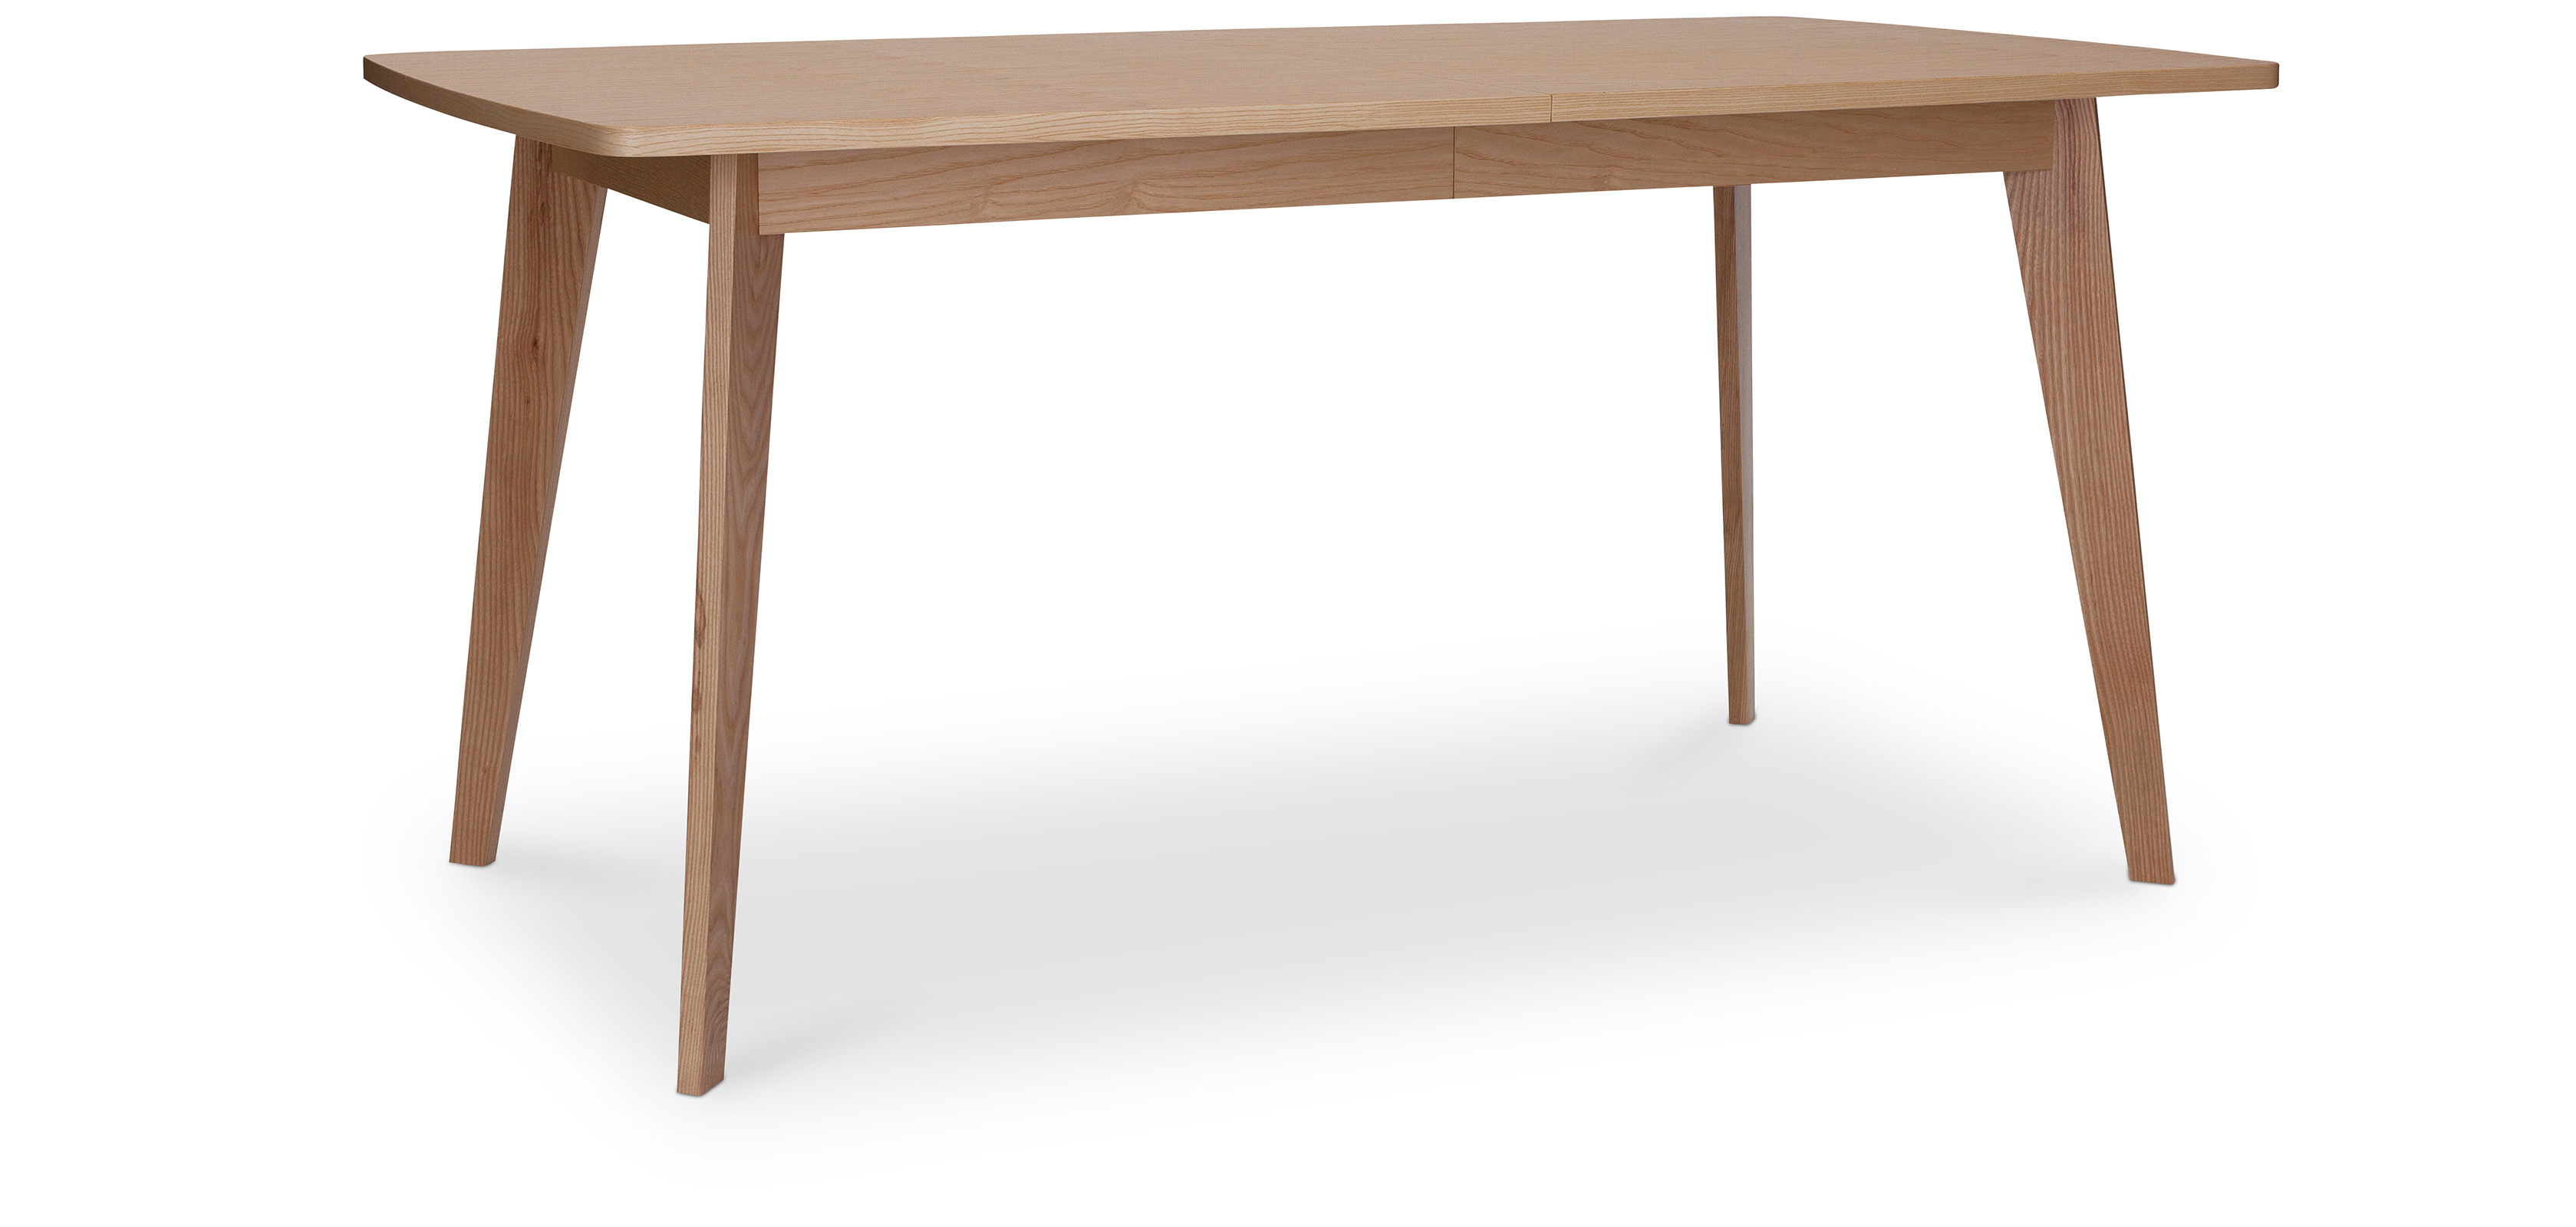 Table salle a manger scandinave valdiz for Table salle a manger scandinave